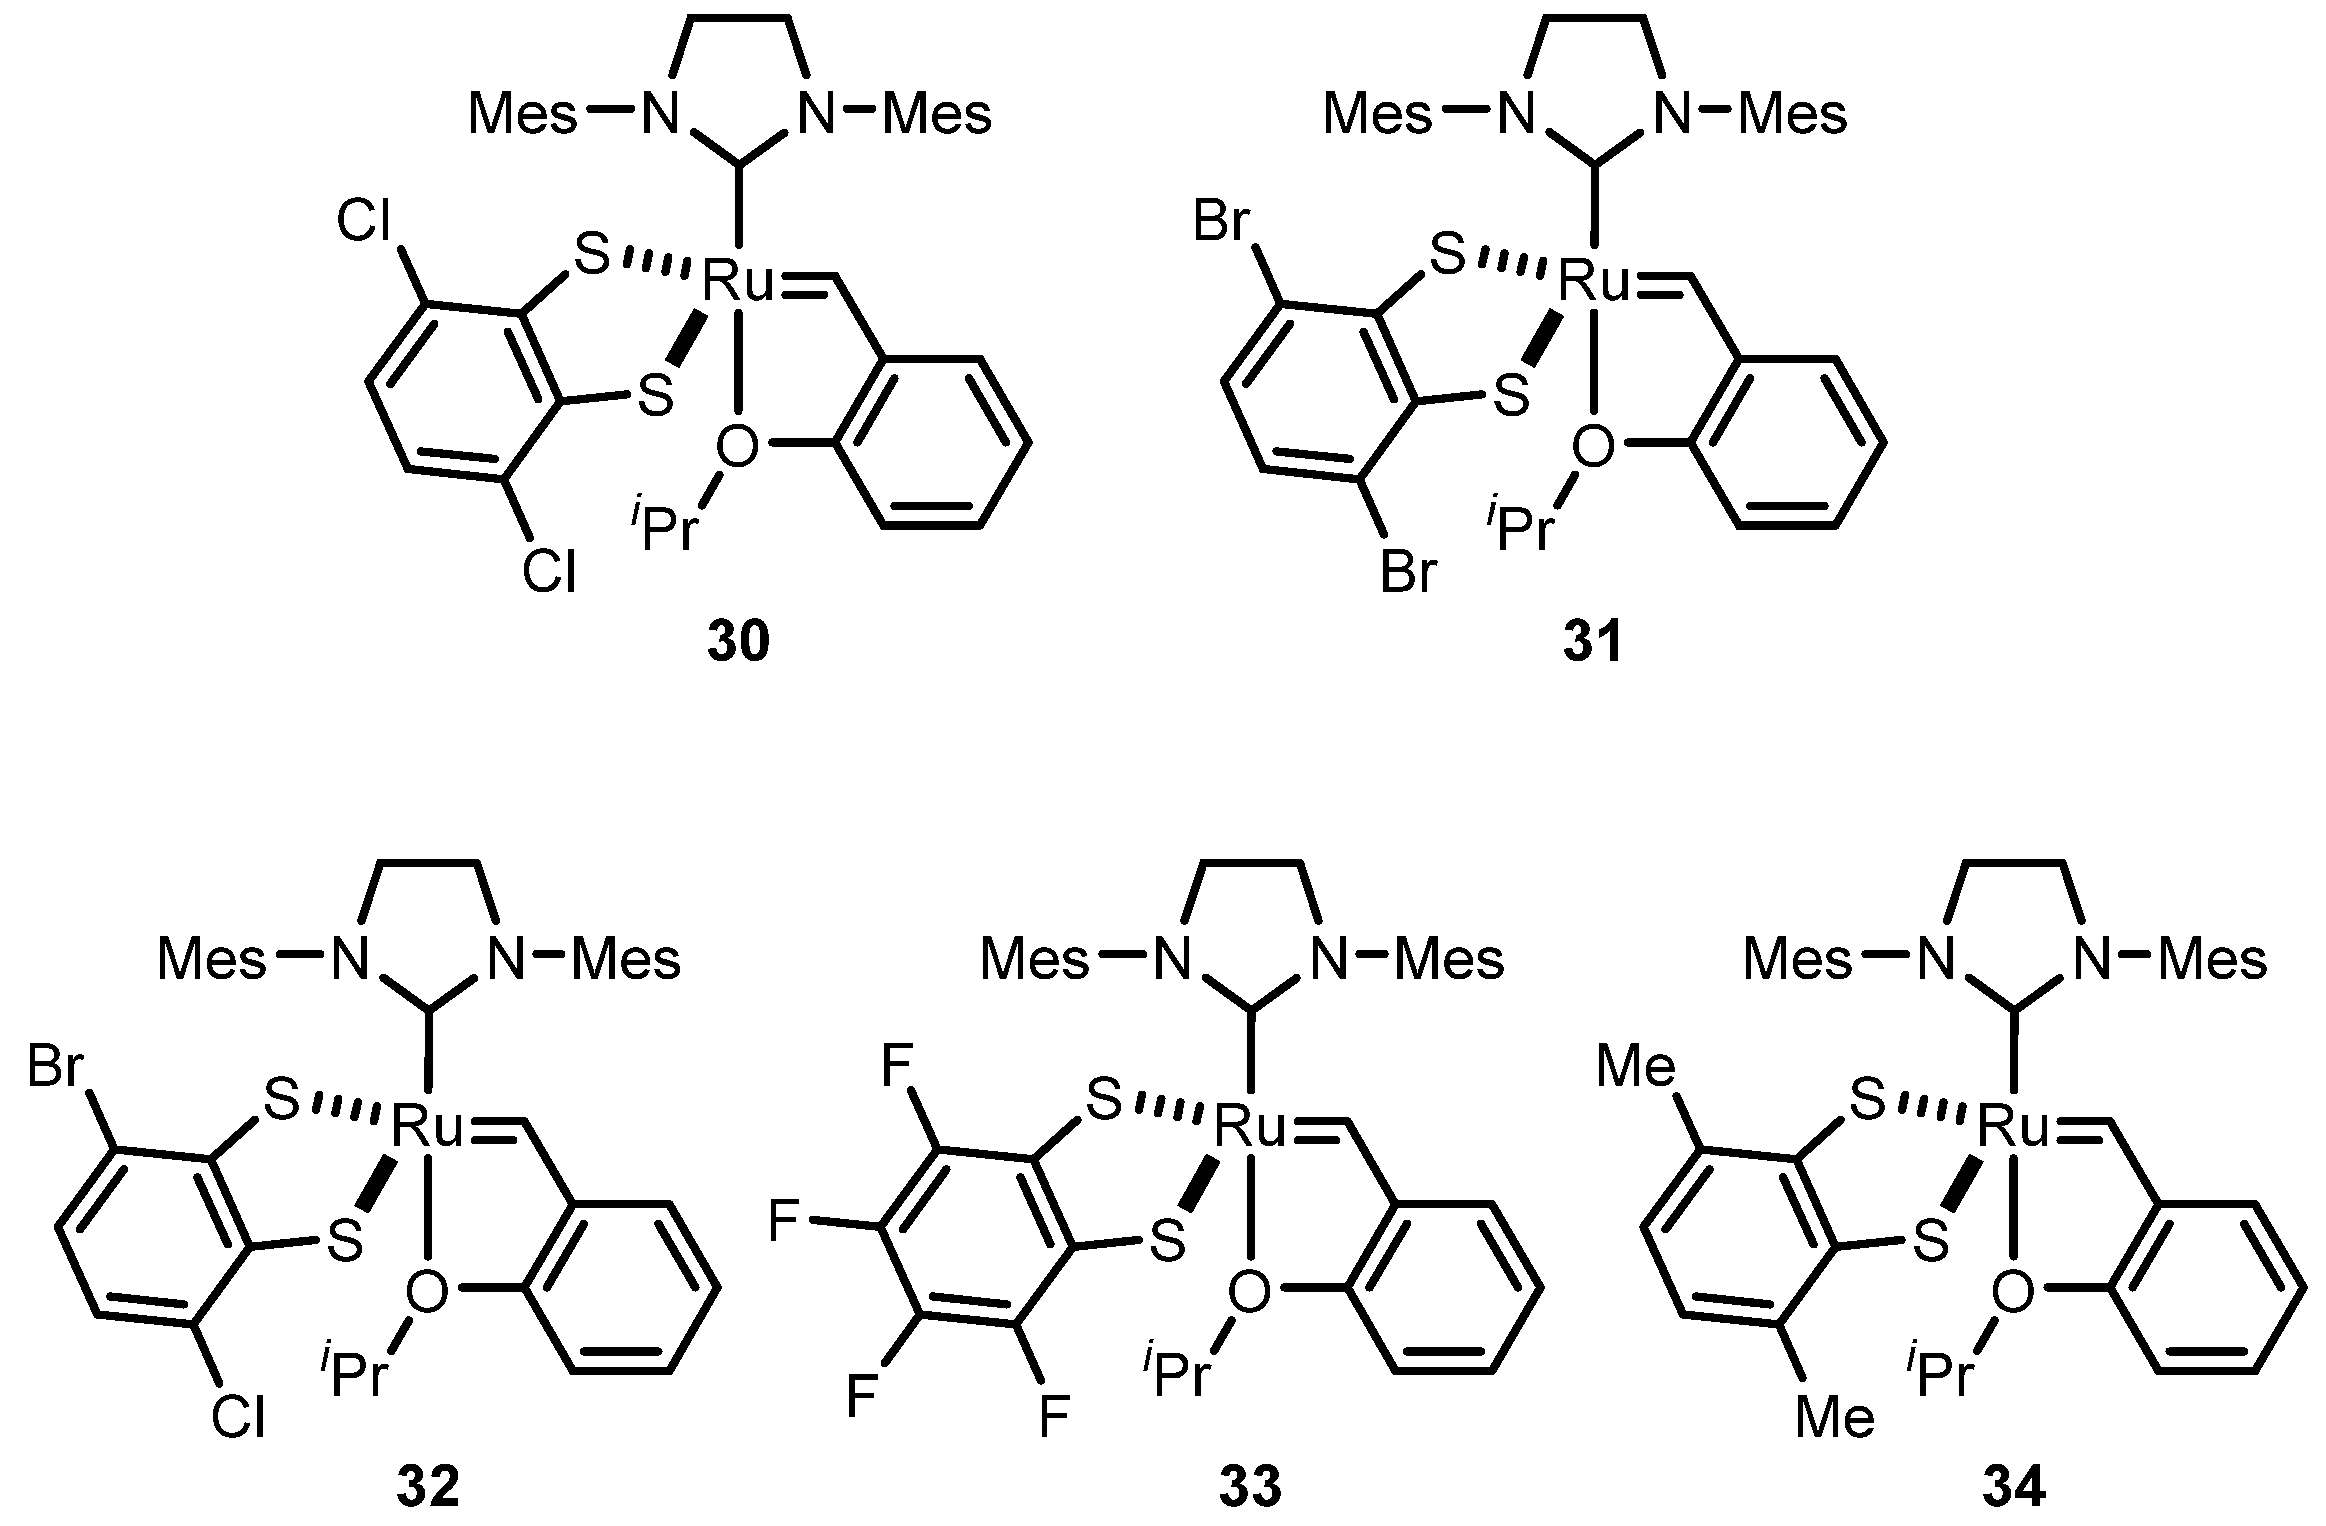 grubbs metathesis review Olefin metathesis by supported metal oxide catalysts grubbs, and schrock for review will focus on olefin metathesis by heterogeneous.